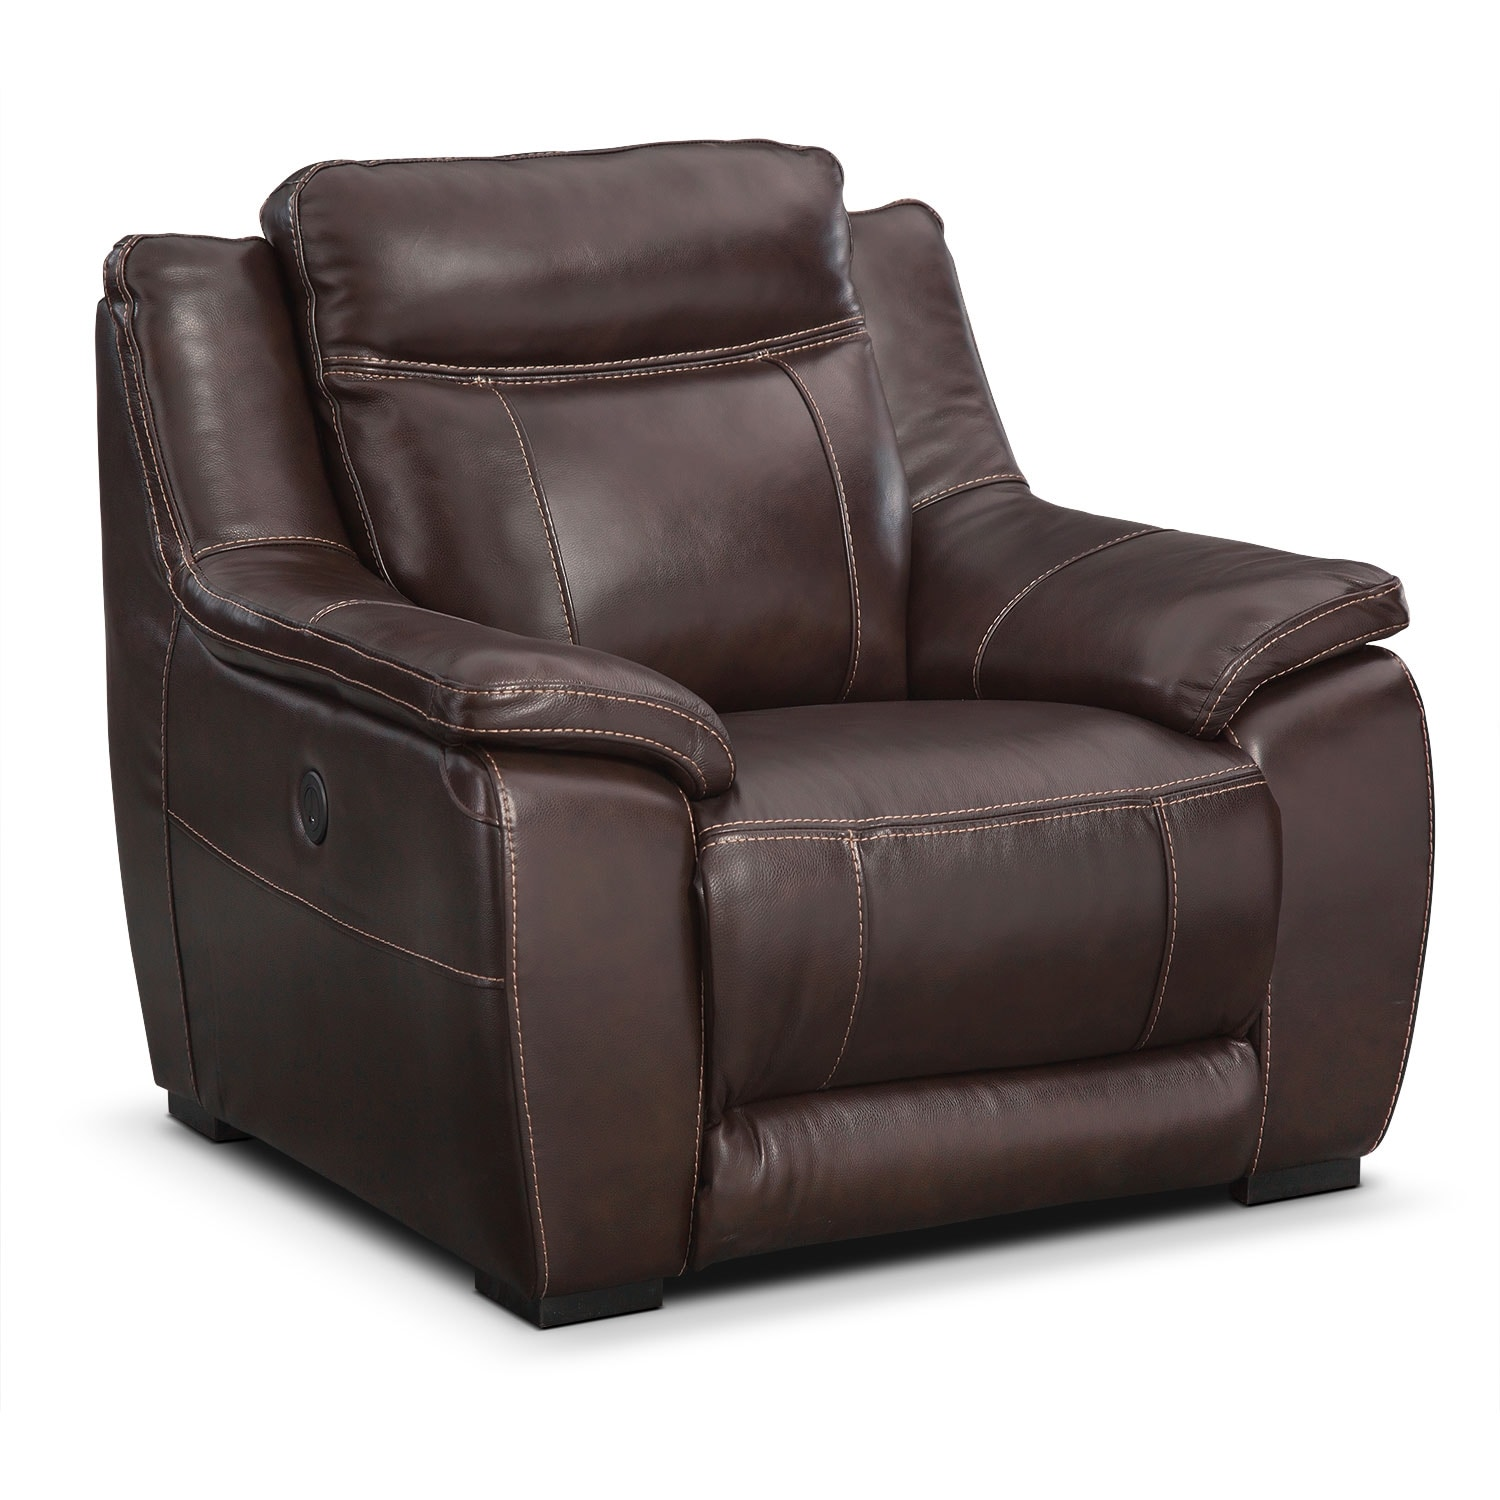 Lido Power Recliner   Brown